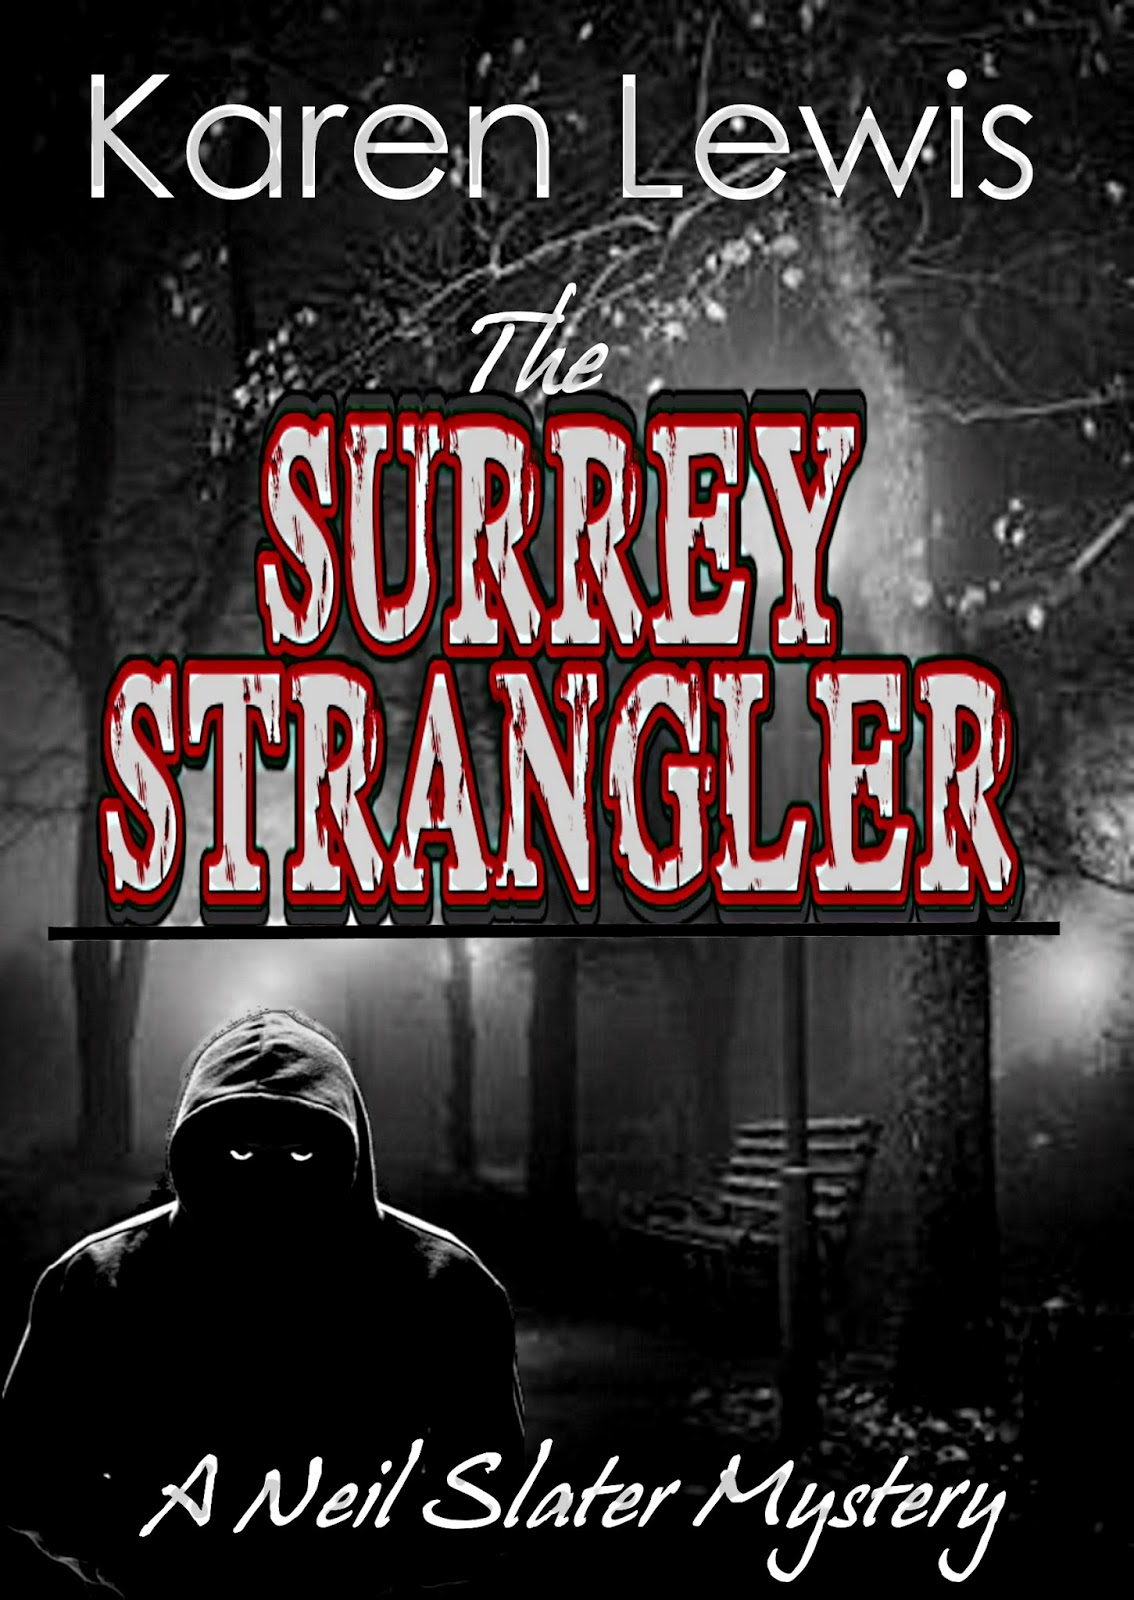 http://www.amazon.co.uk/Surrey-Strangler-Karen-Lewis-ebook/dp/B00PIUKFT8/ref=sr_1_1?s=books&ie=UTF8&qid=1415856535&sr=1-1&keywords=surrey+strangler+lewis+karen